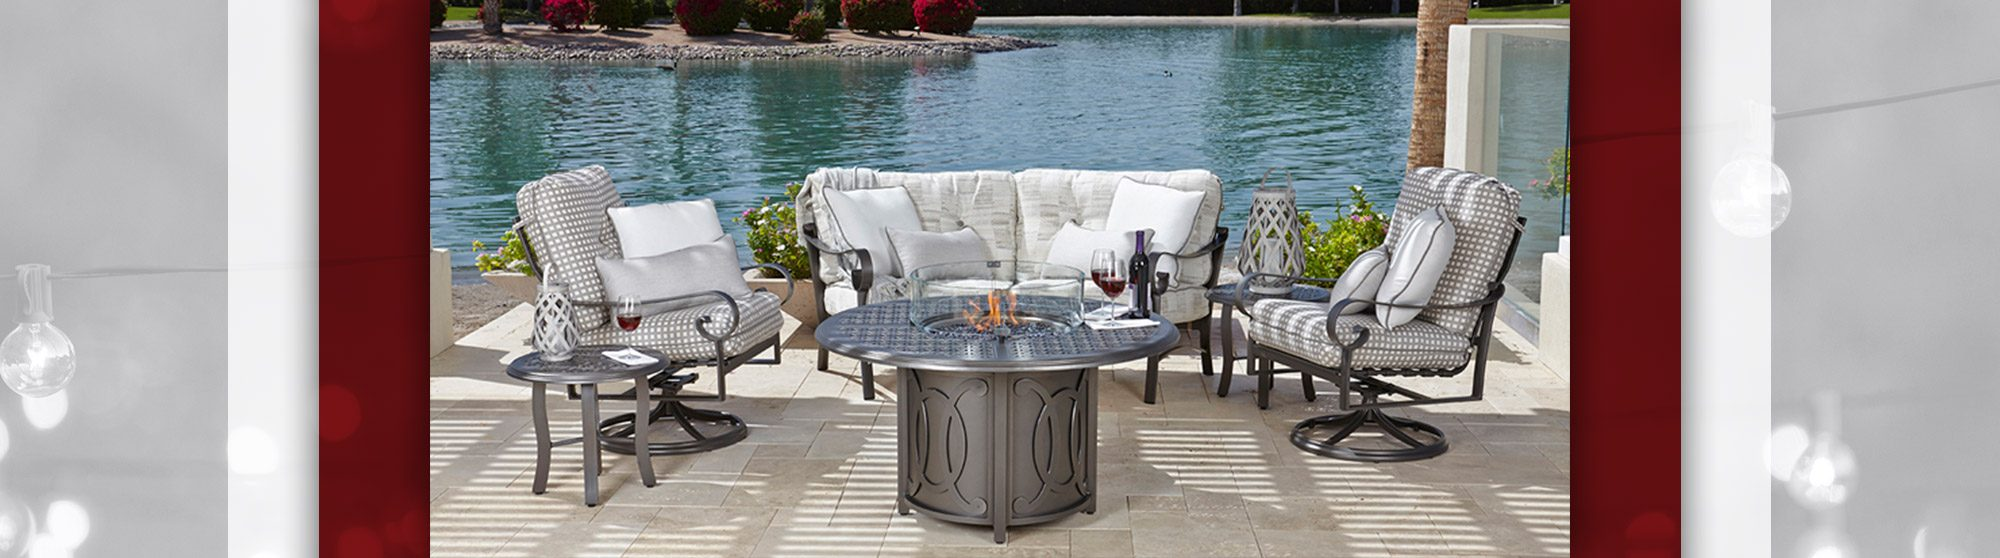 Outdoor Furniture Alpharetta Outdoor Wicker Furniture - Patio furniture roswell ga